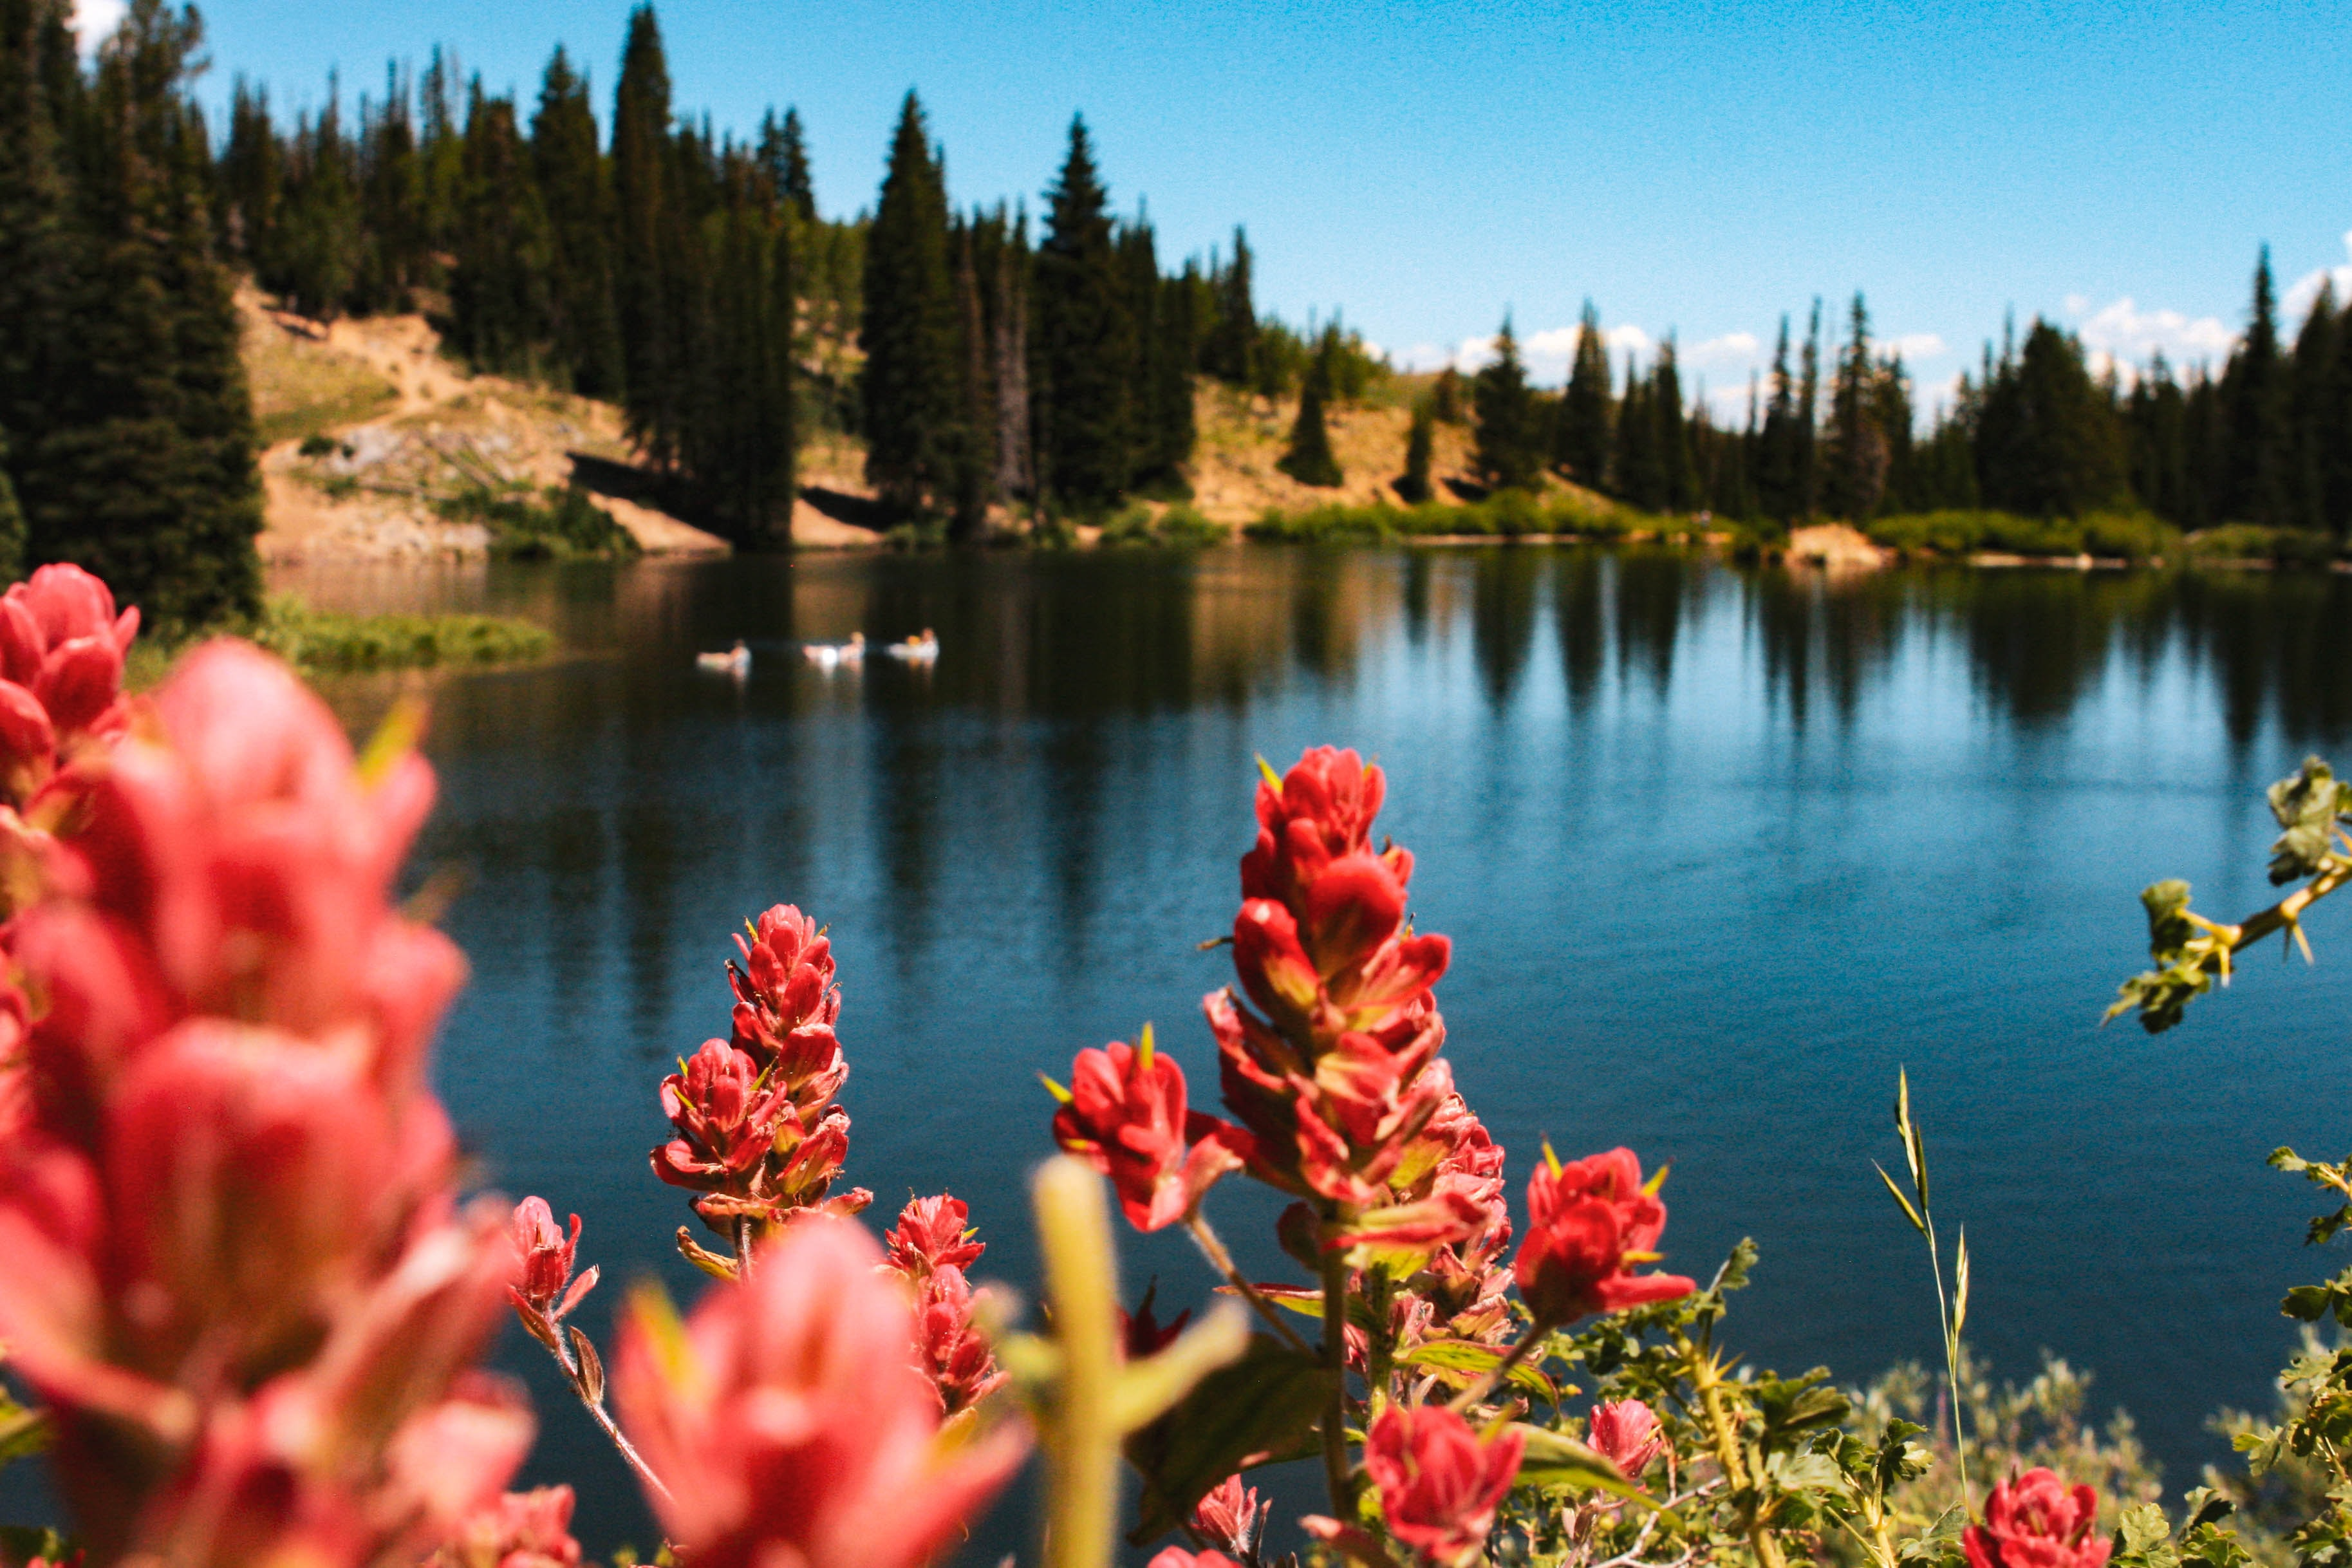 person showing red flowers and body of water